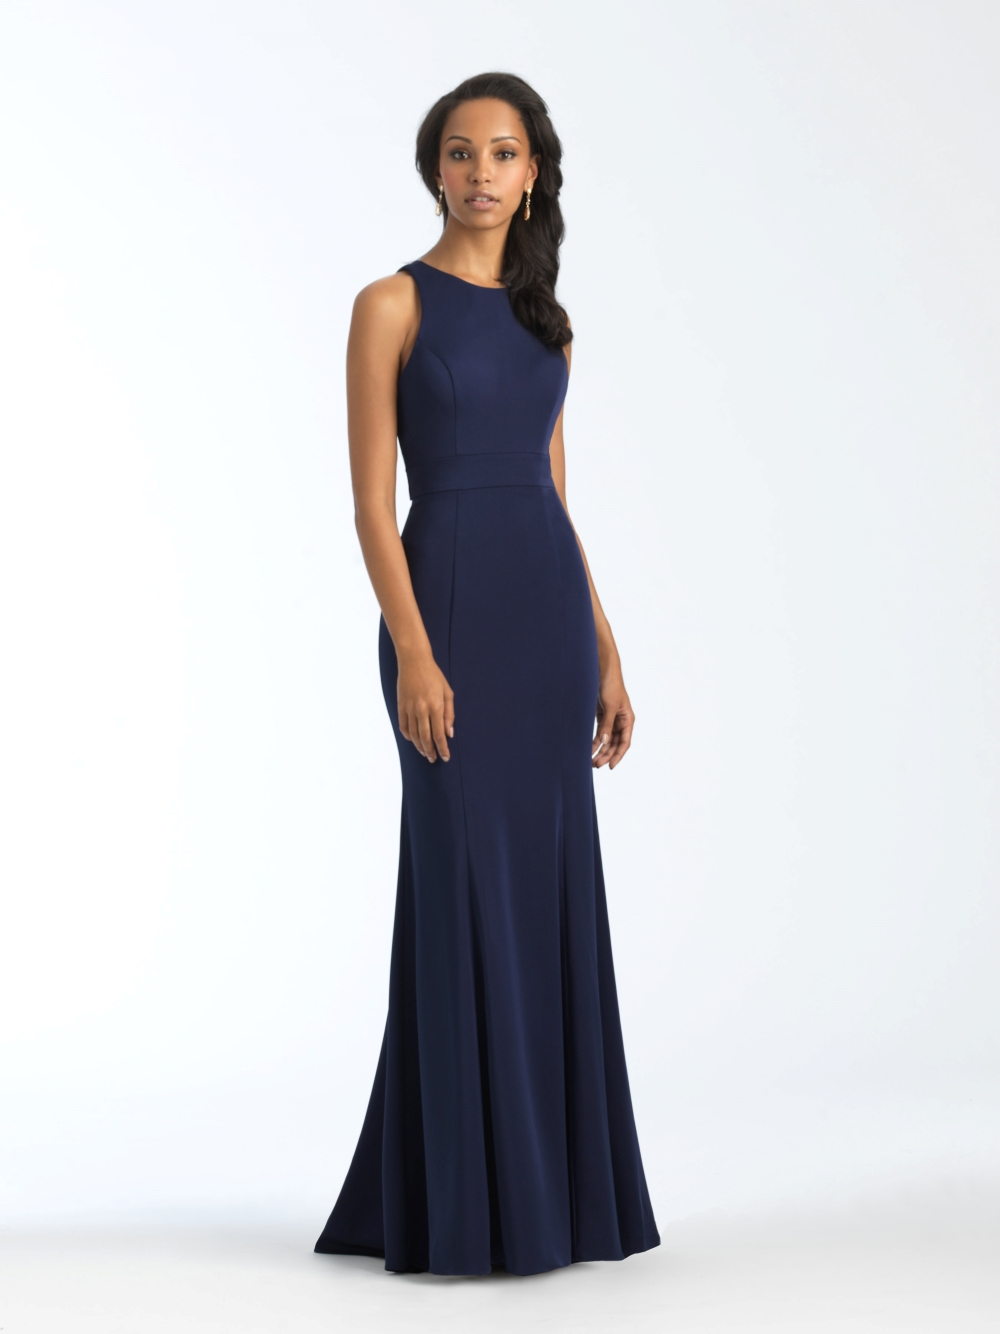 elegant-navy-bridesmaid-dress